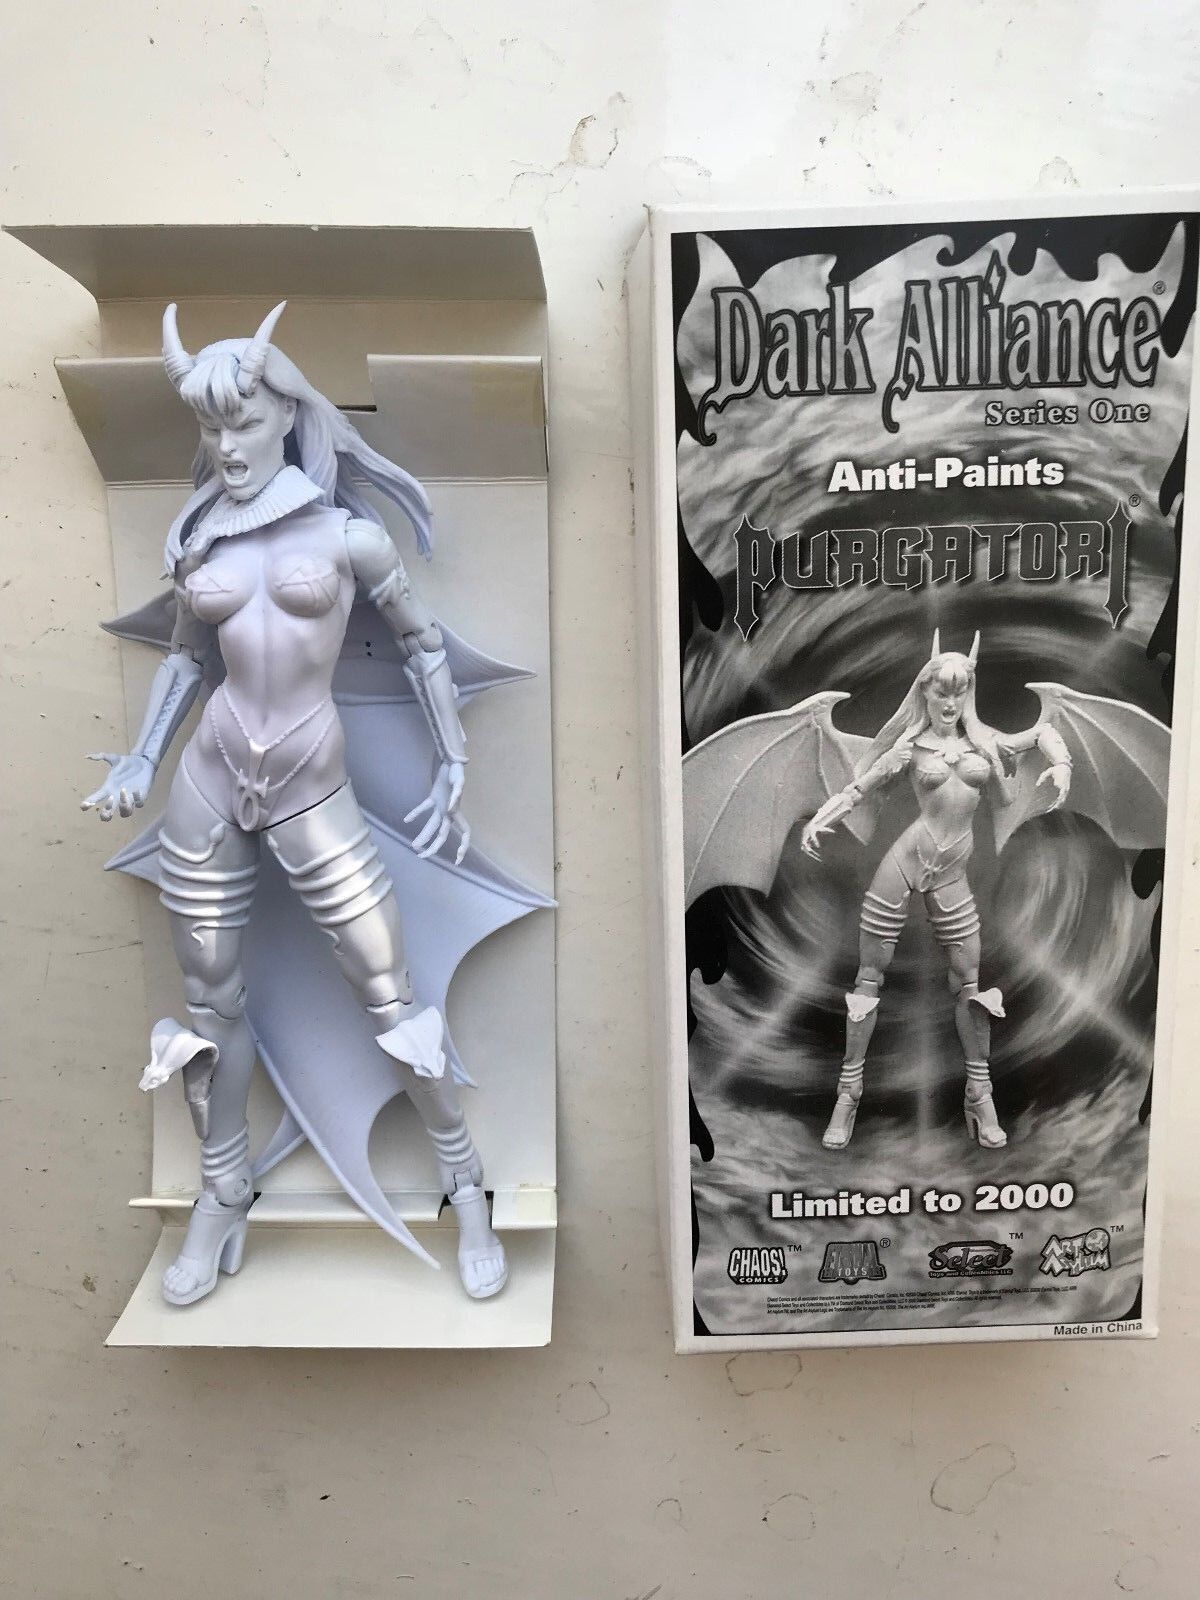 BNIB BNIB BNIB CHAOS DARK ALLIANCE SERIES 1 BRIAN PULIDO'S PURGATORI ANTI-PAINTS FIGURE 834